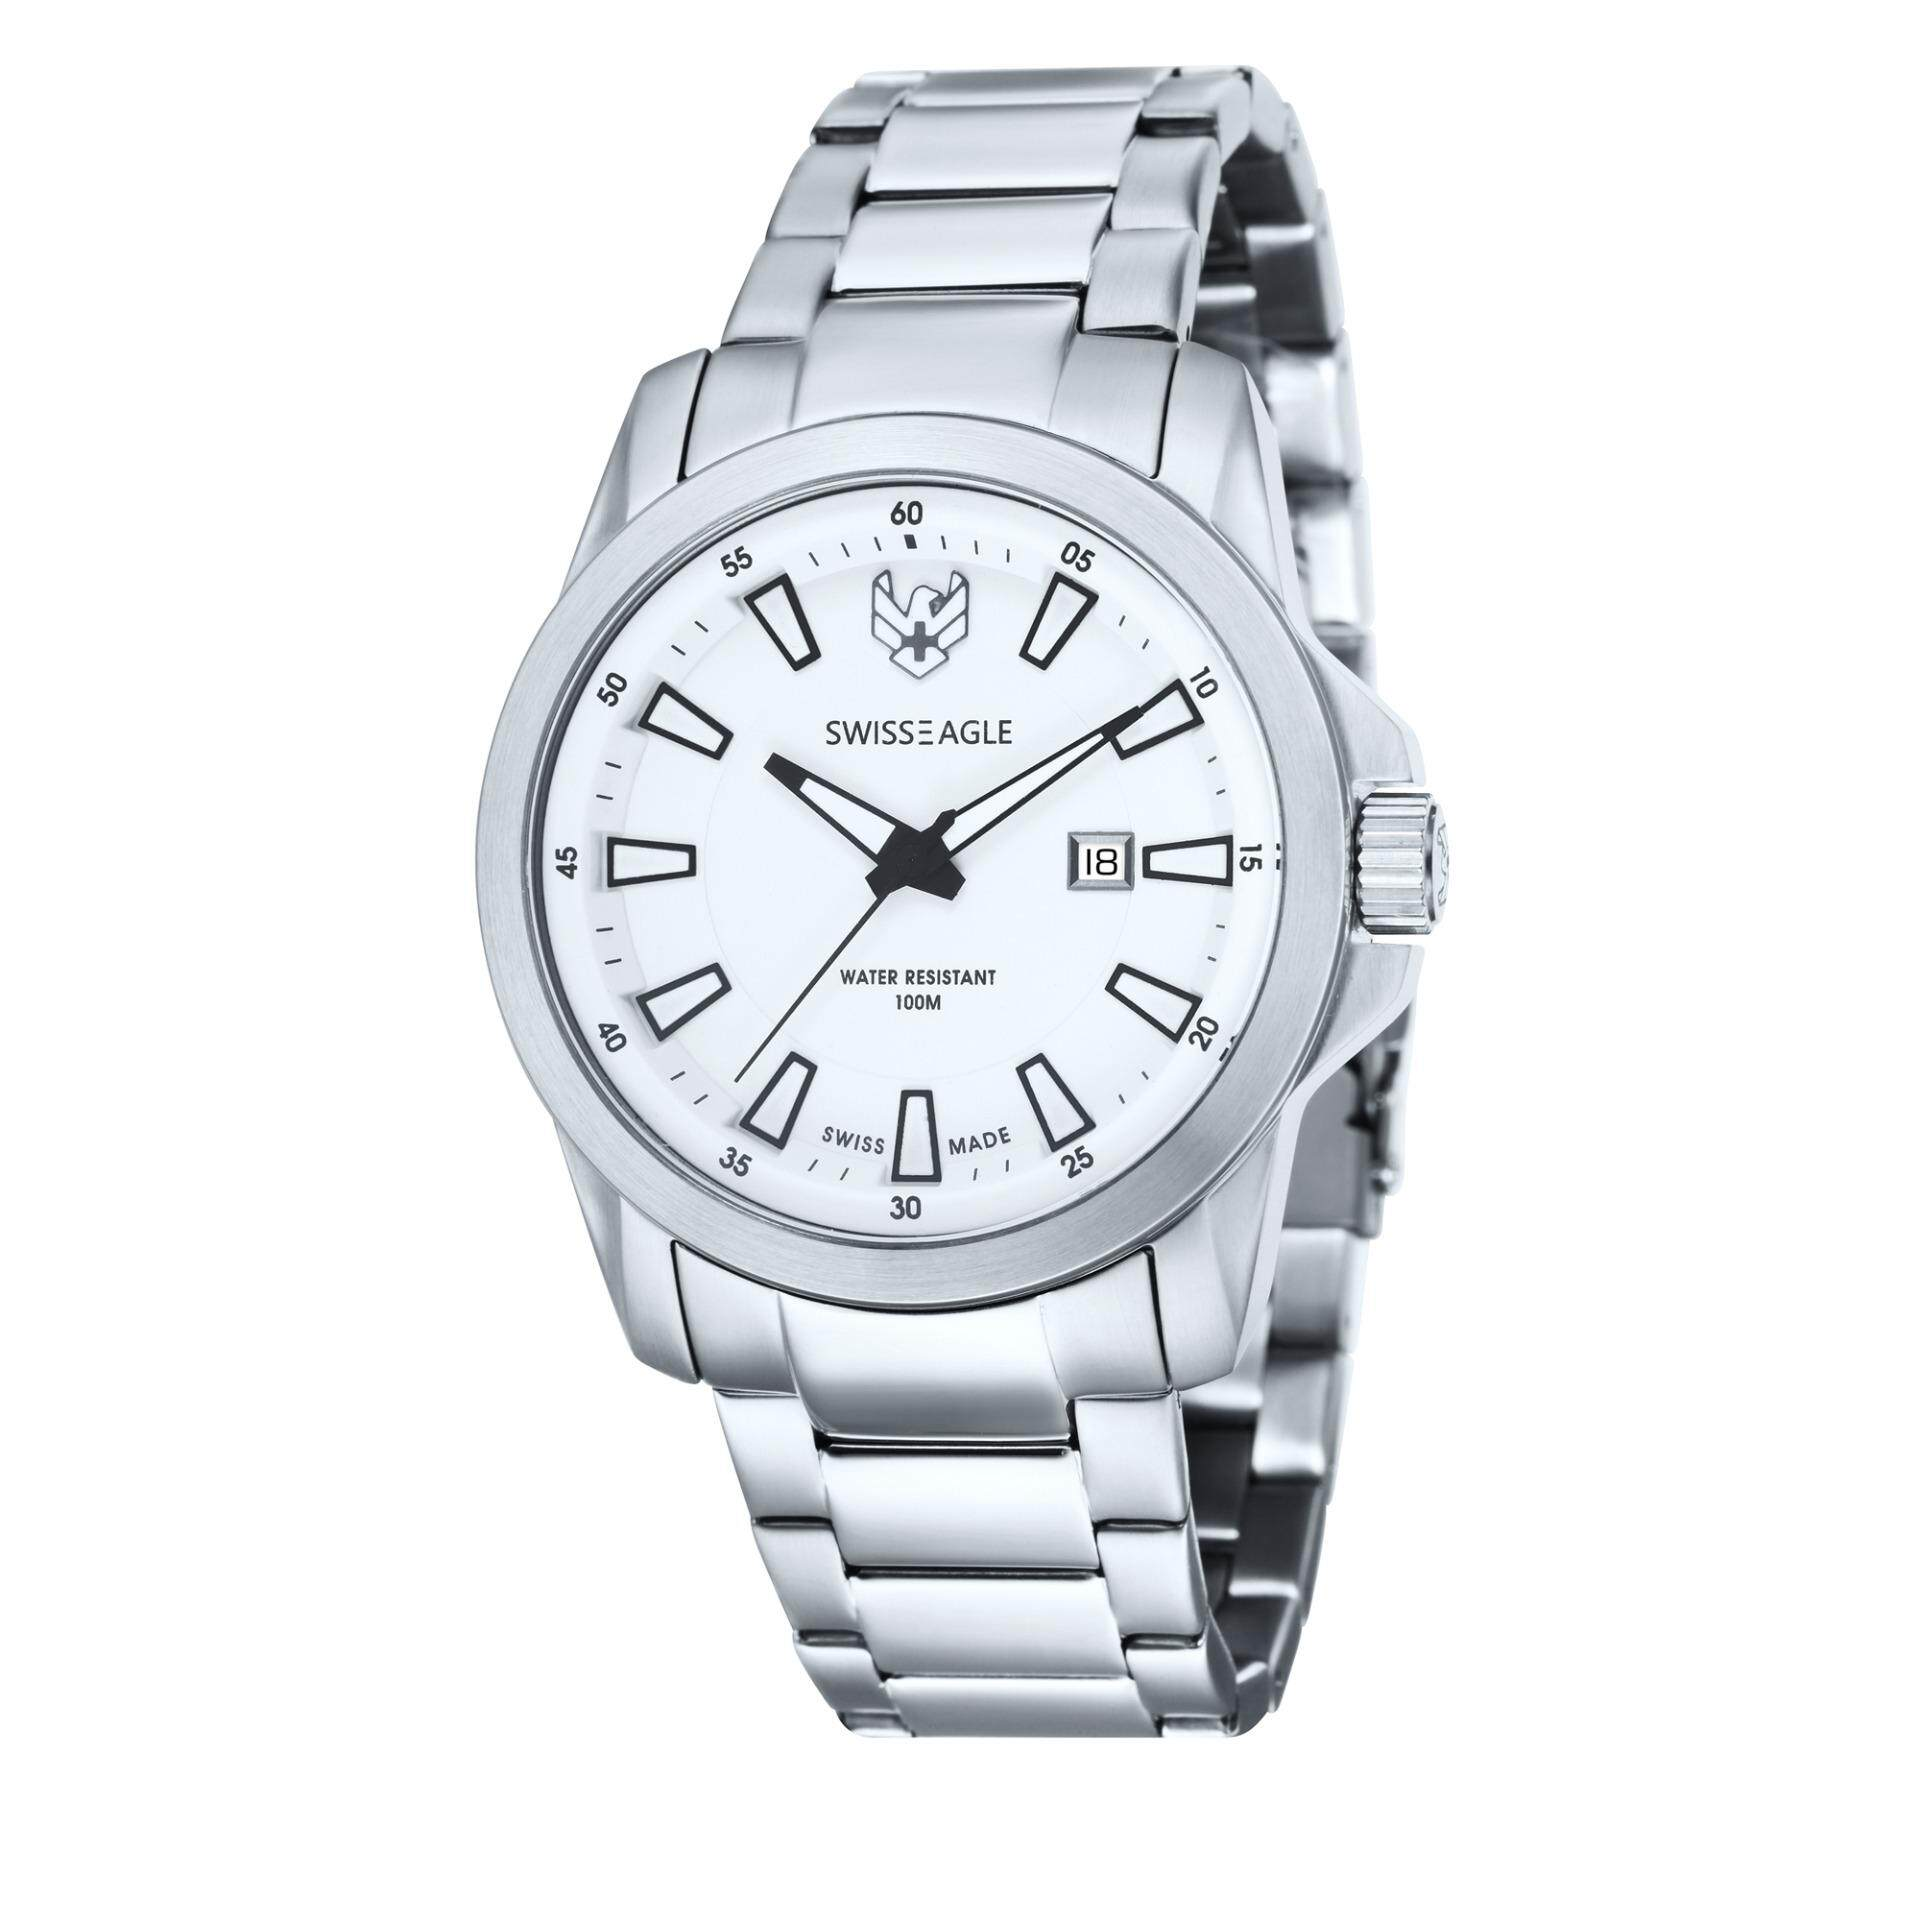 original at men best watch list india brands se for analog dive online watches silver price buy swiss in eagle